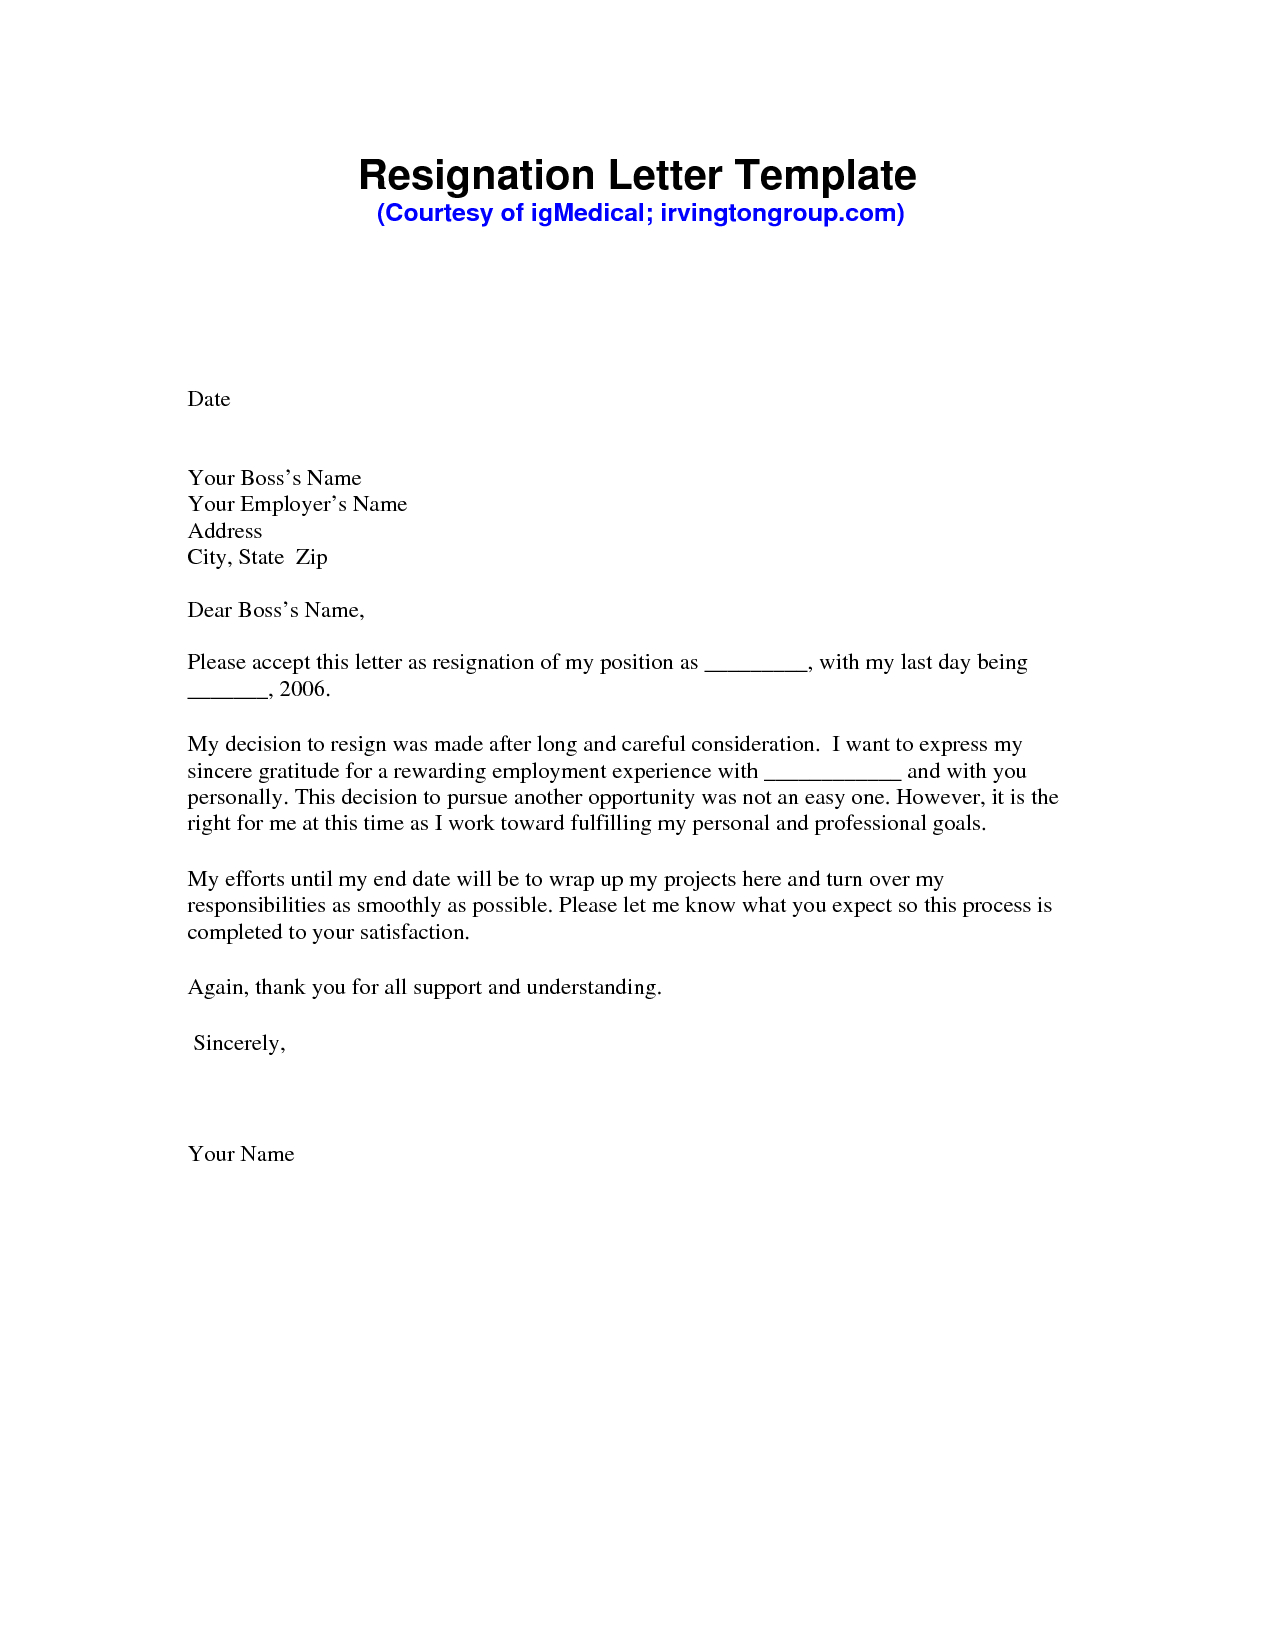 Resignation Letter Template Word - Resignation Letter Sample Pdf Resignation Letter